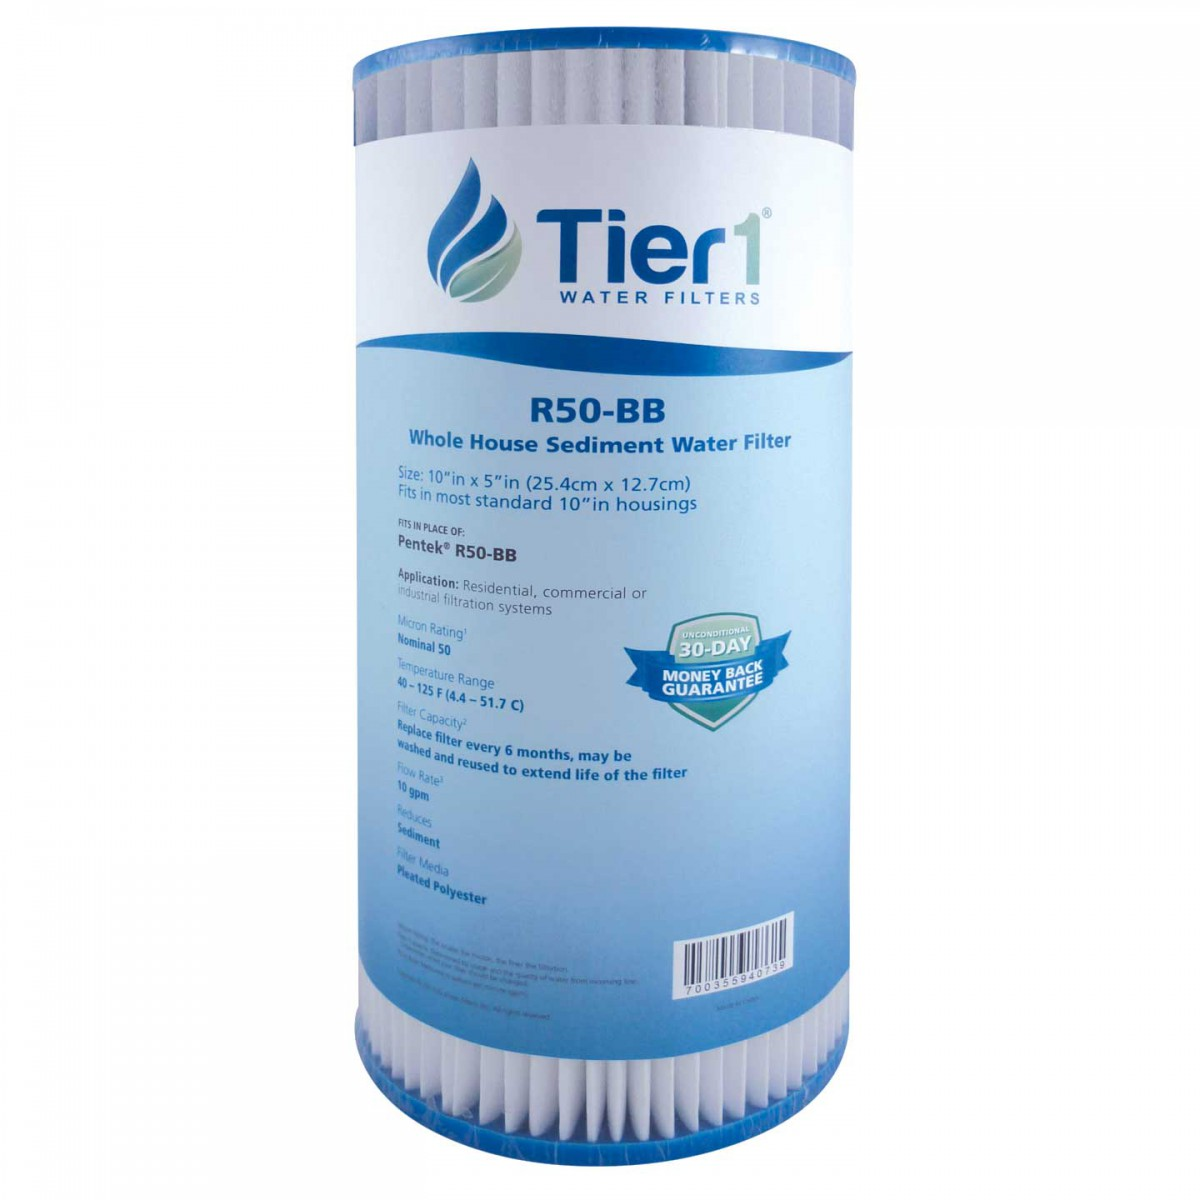 Whole house sediment water filter Filter Cartridge Zapdengiclub Pentek R50bb Comparable Whole House Sediment Water Filter By Tier1